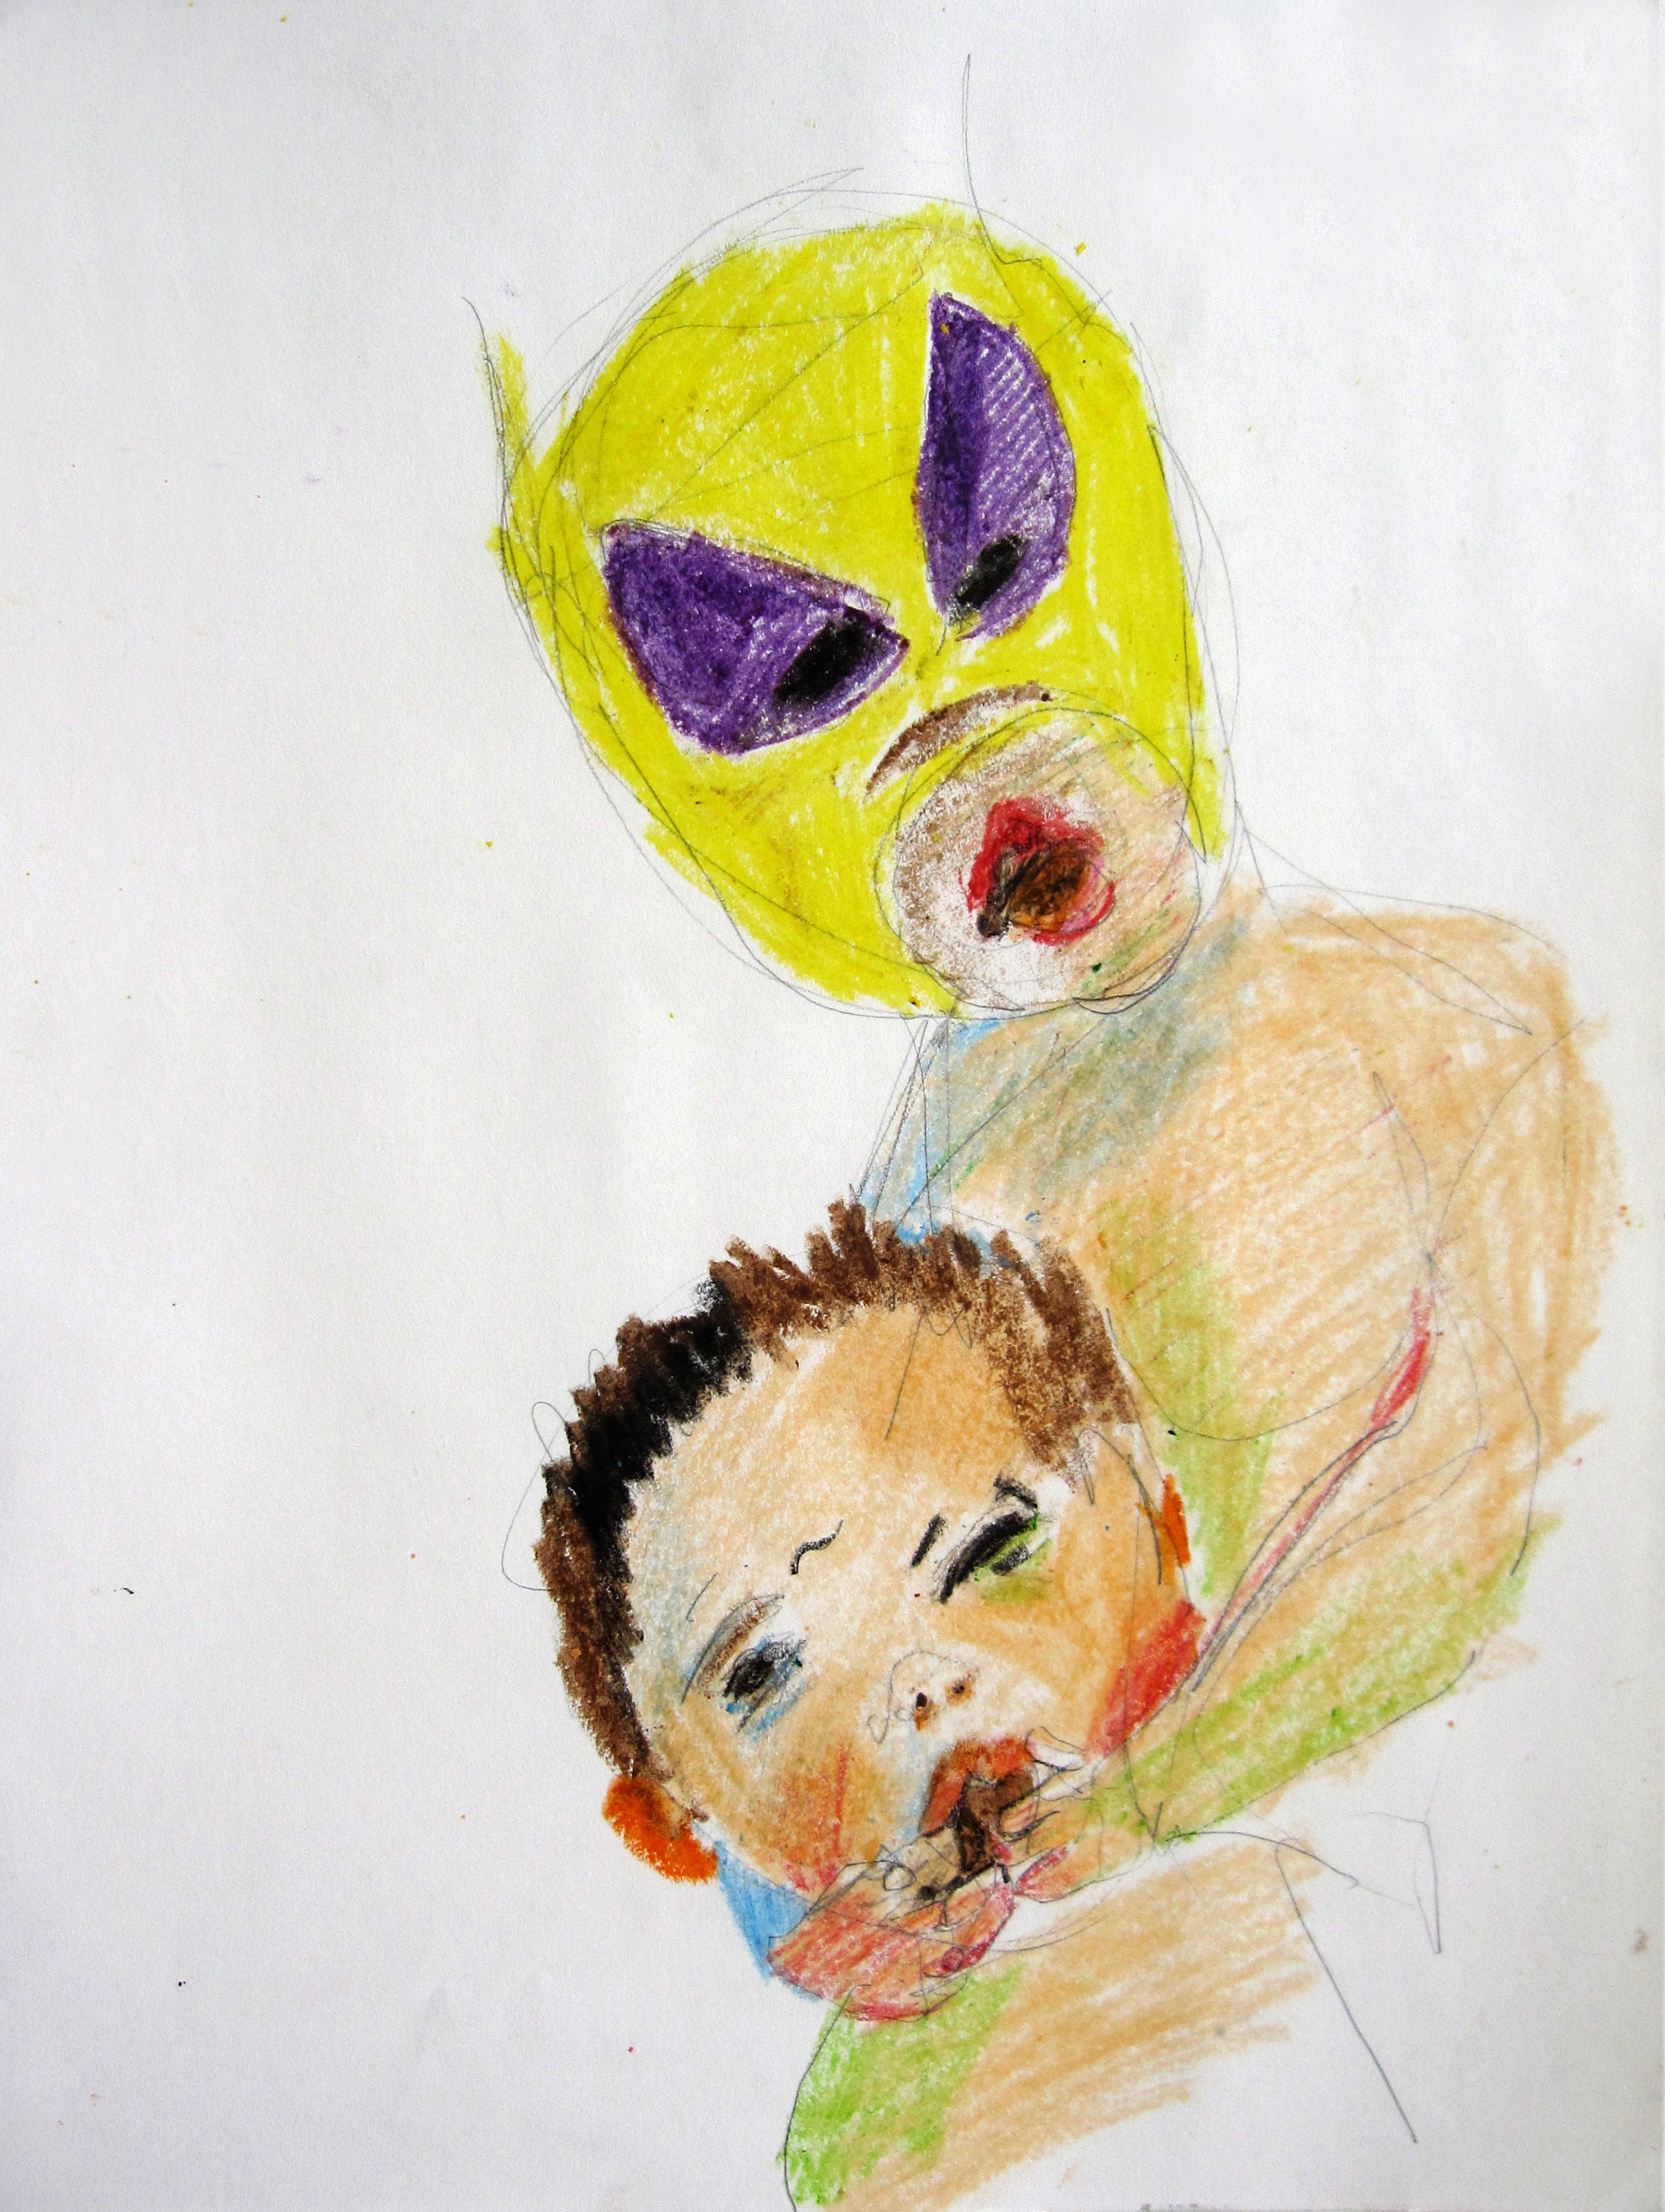 Lucha 8, 2008, Crayon on paper, 14 X11 in.